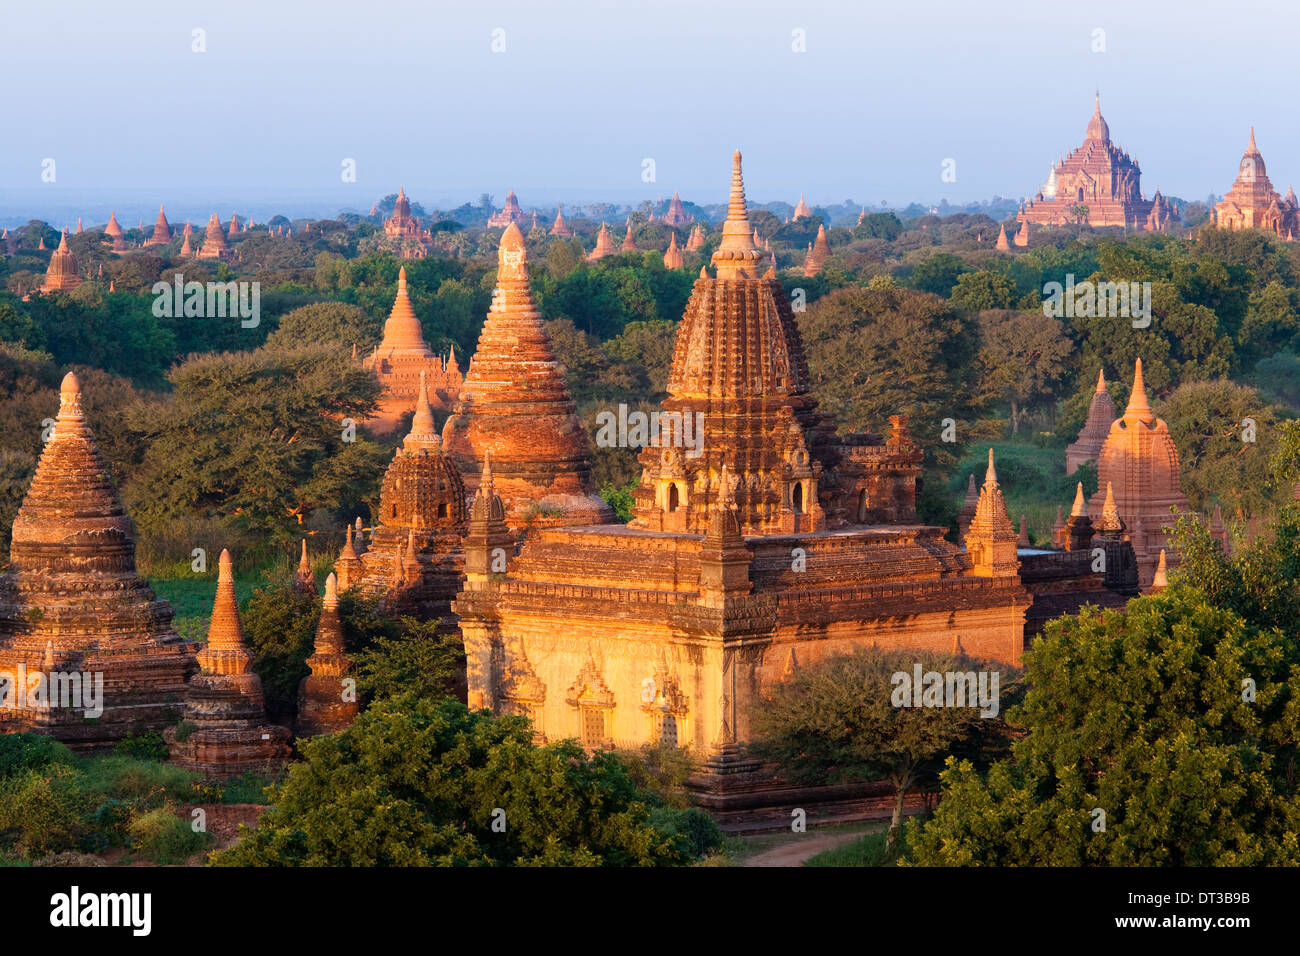 Stupas in the Bagan Archaeological Zone in Bagan, Myanmar - Stock Image